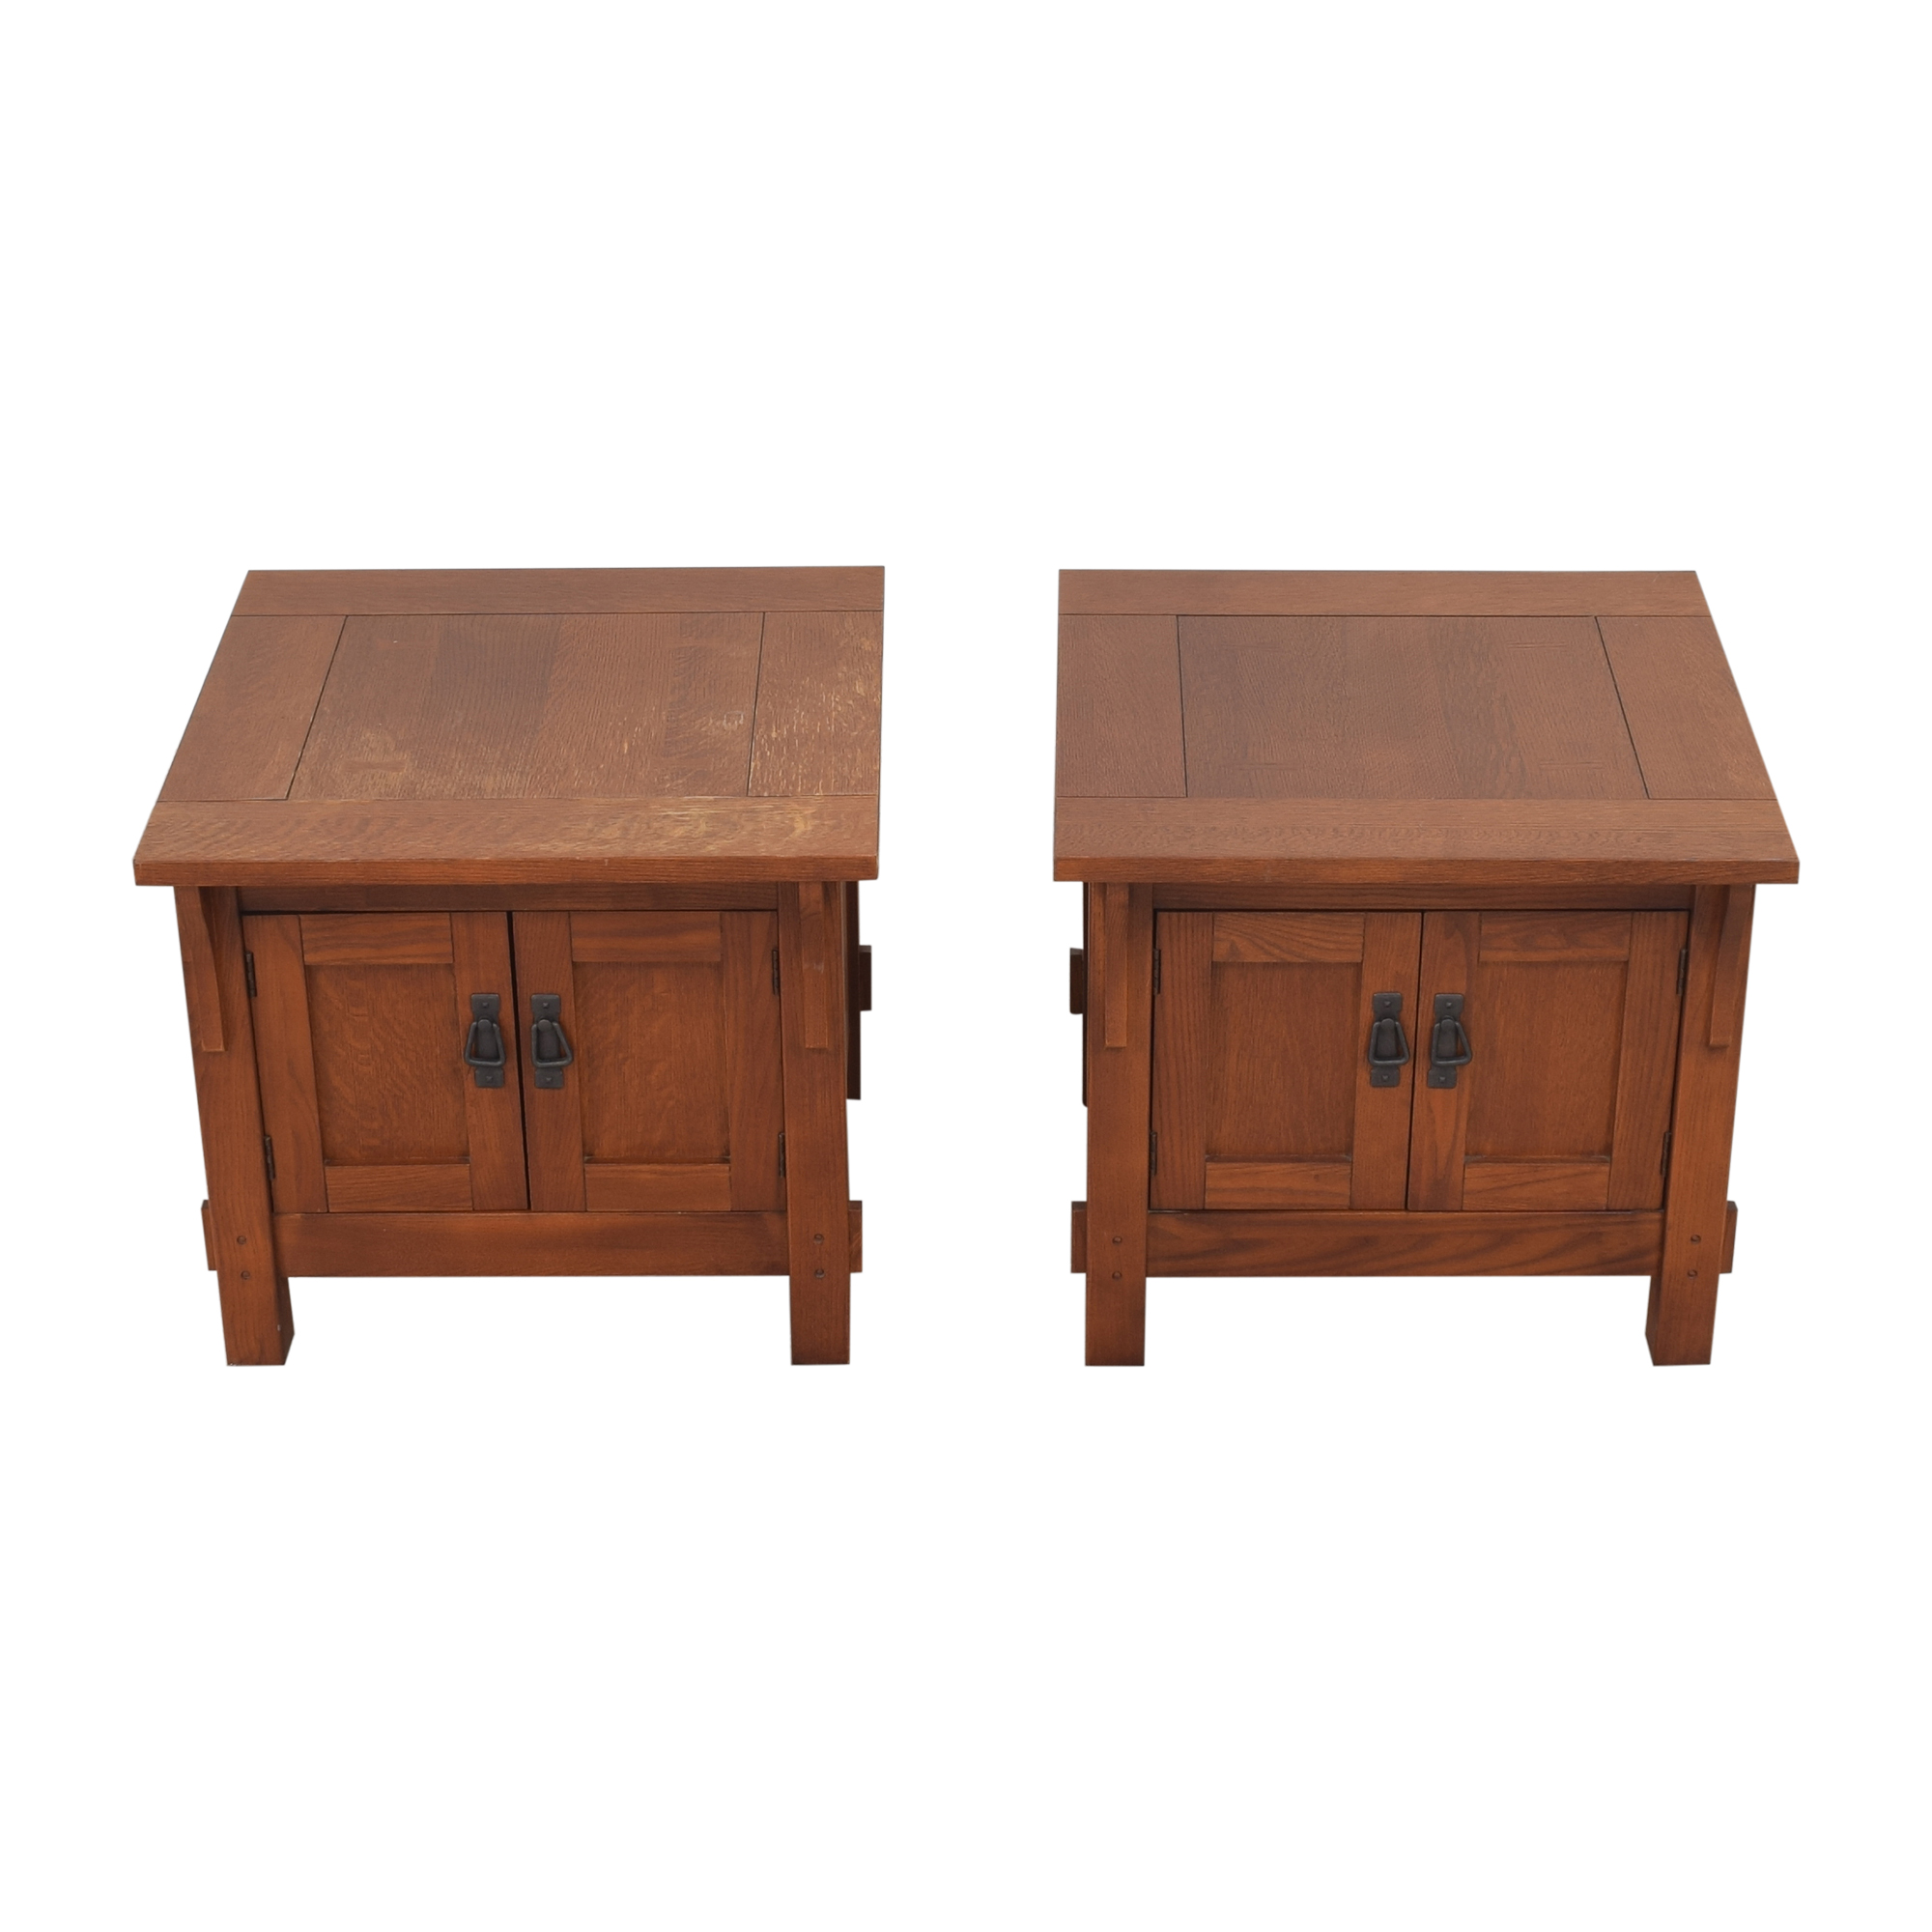 Bassett Furniture Bassett Furniture Two Door End Tables ma